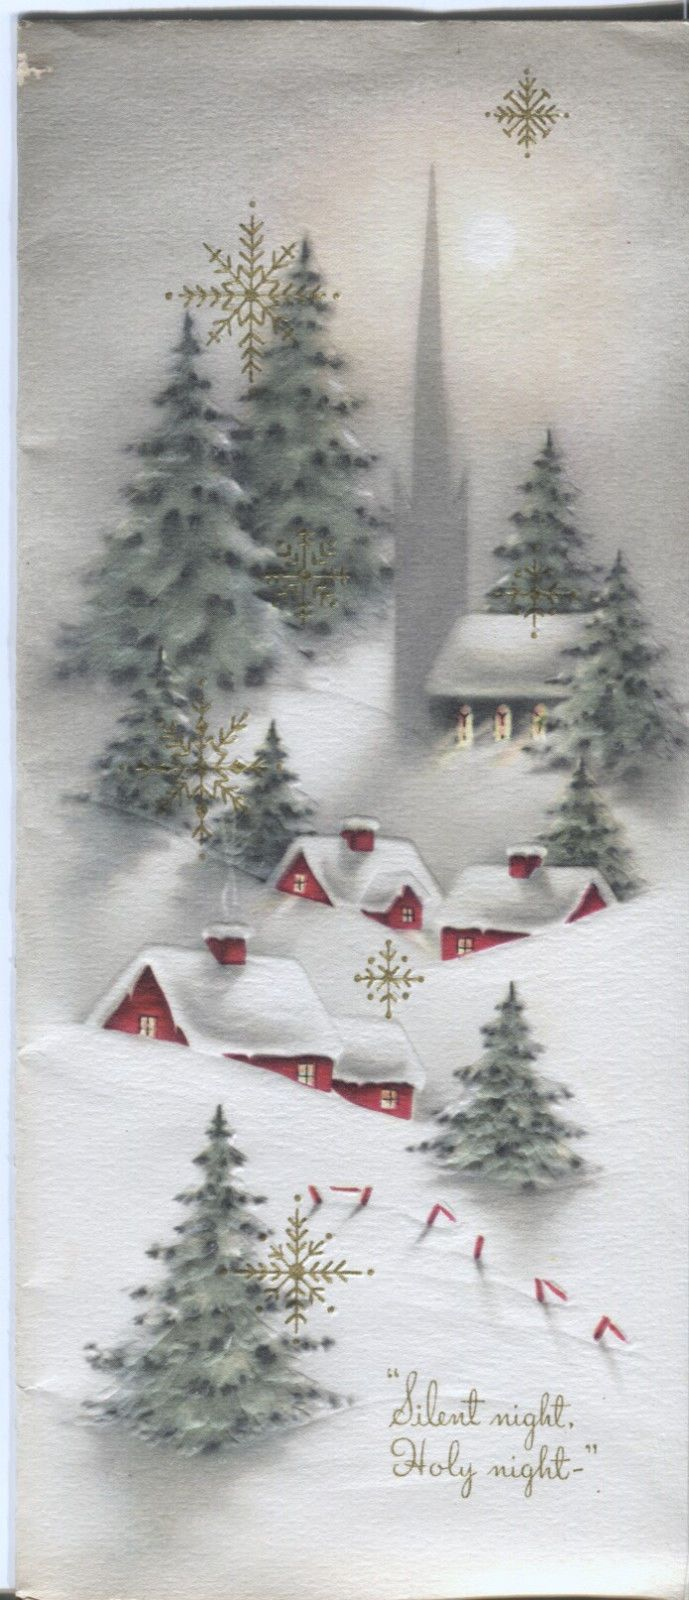 Vintage Christmas Card Snowy Village Scene: